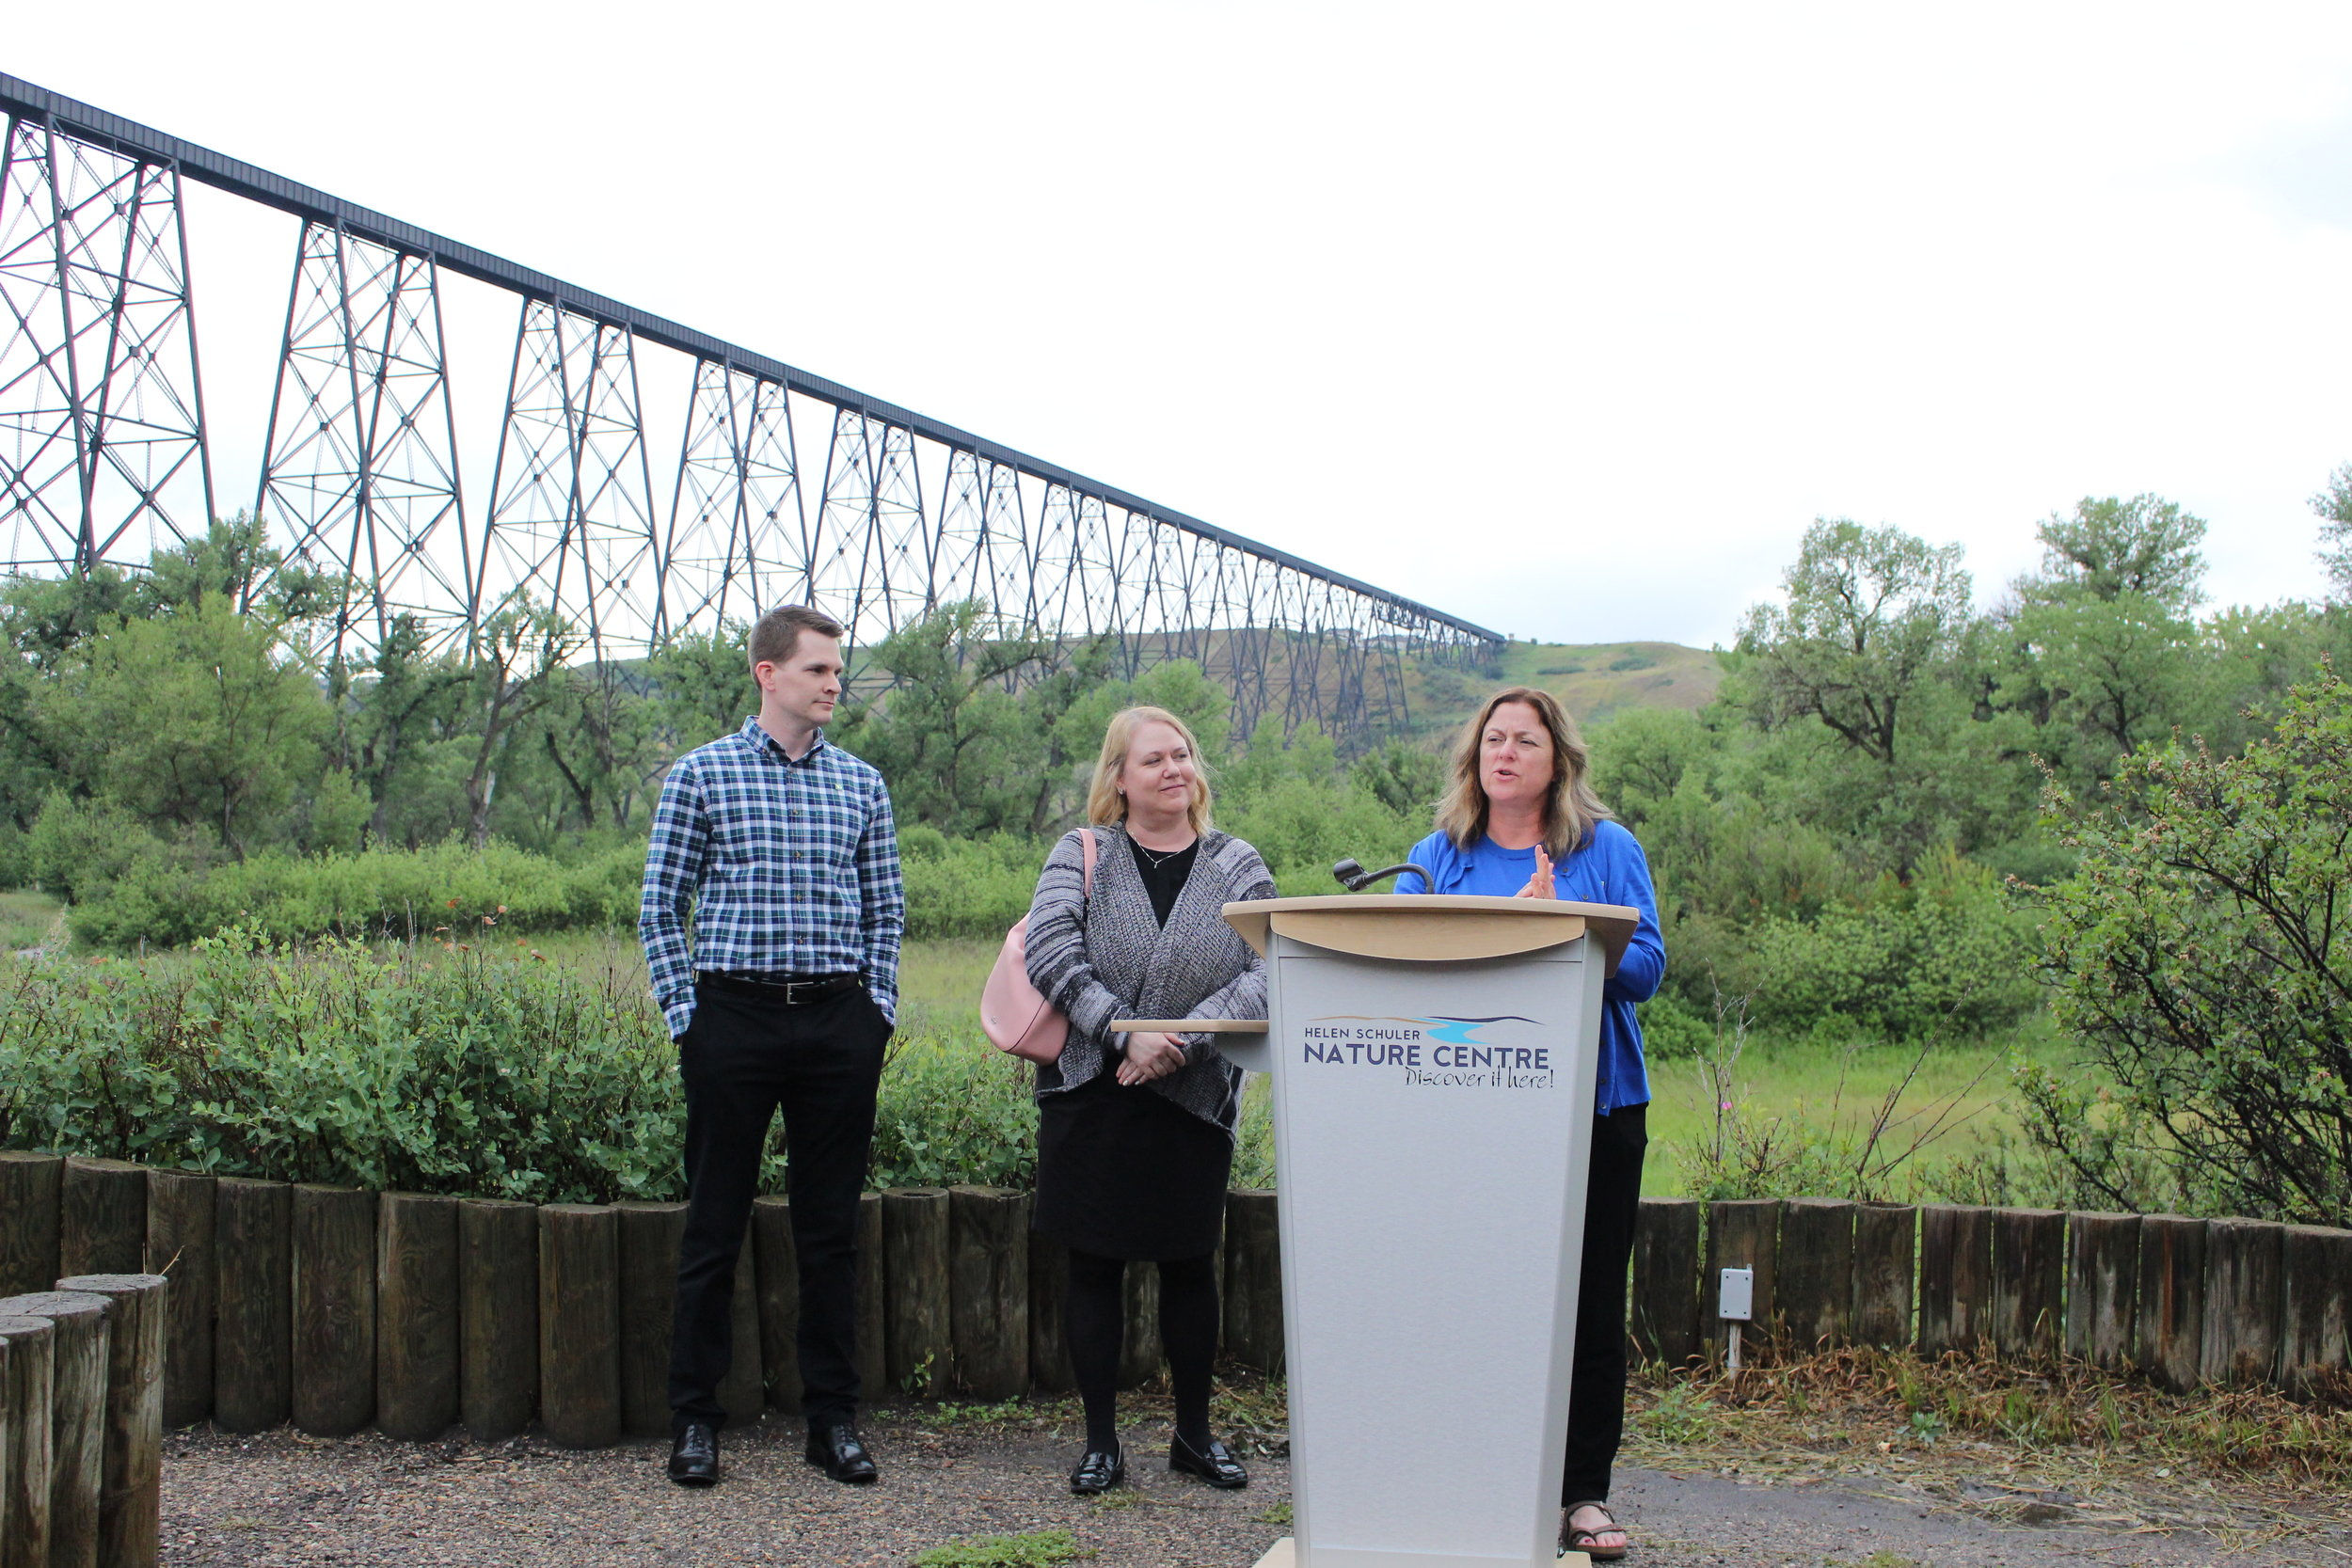 Candace Misouka and representatives of TD Friends of the Environment Foundation share why the Outdoor Classroom project is important to them